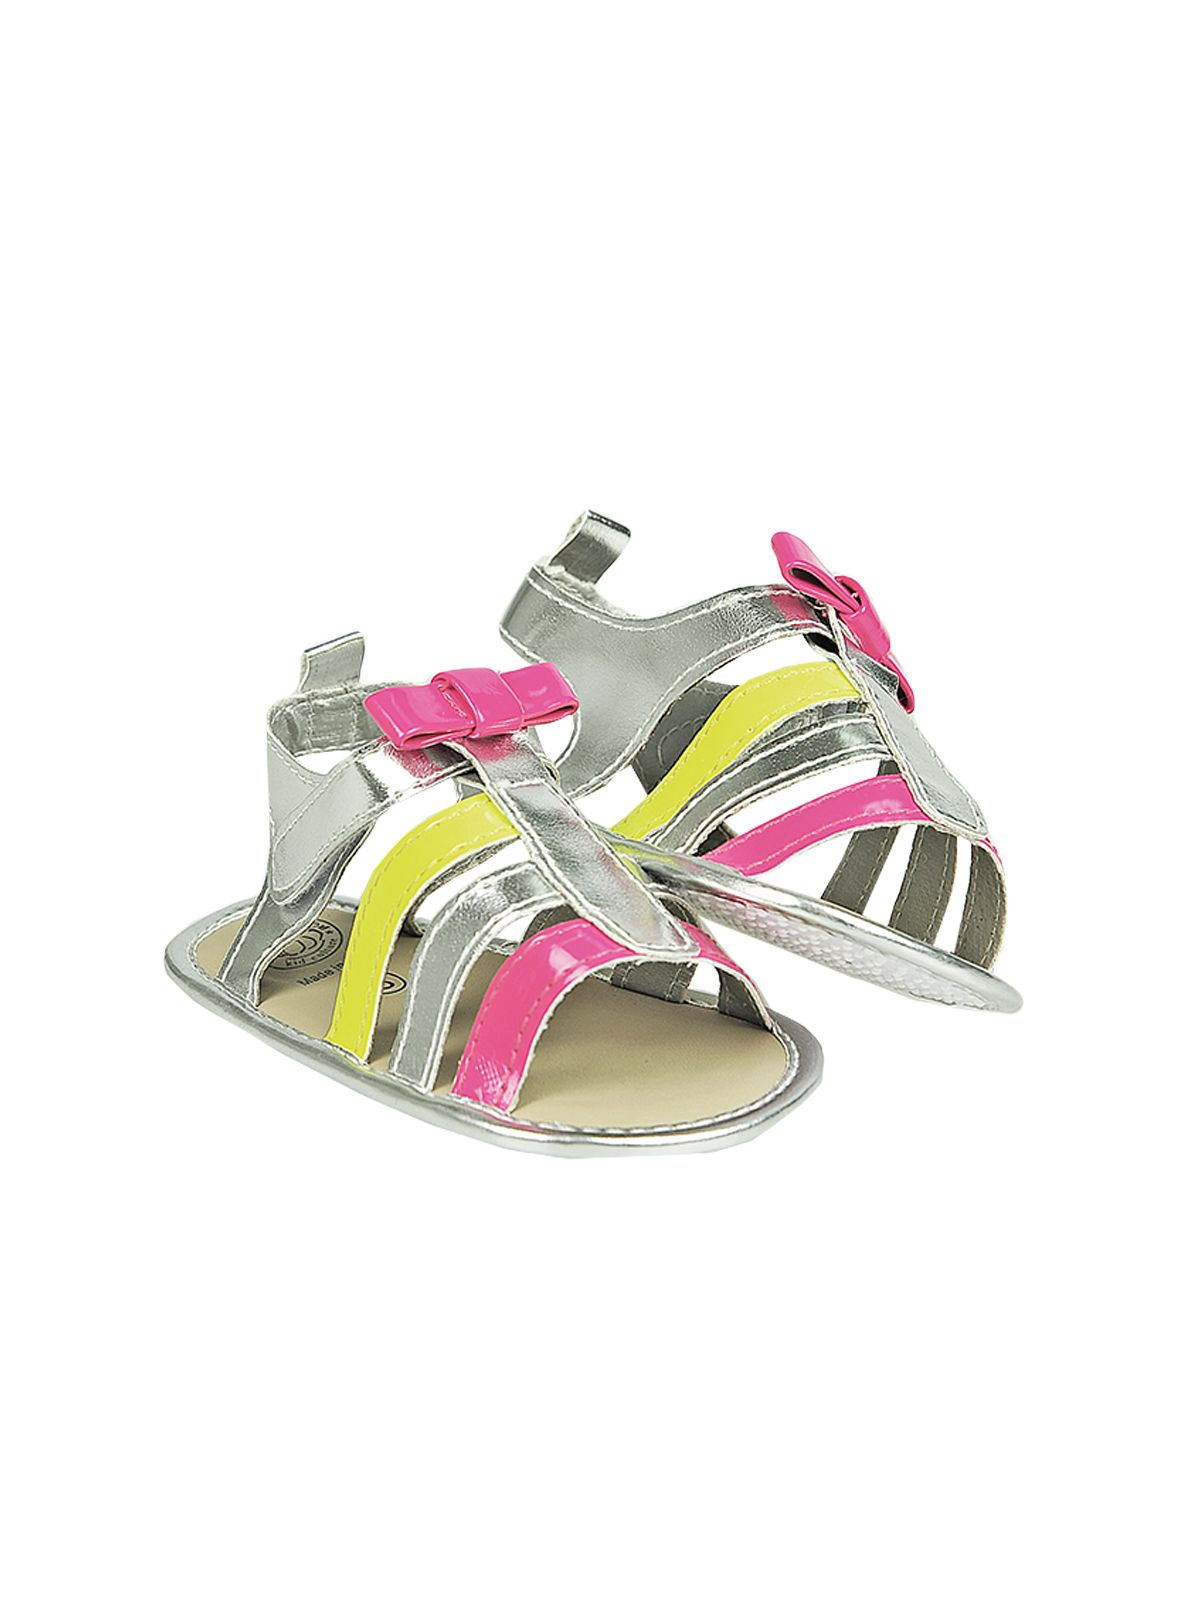 Baby girls bow pop sandal